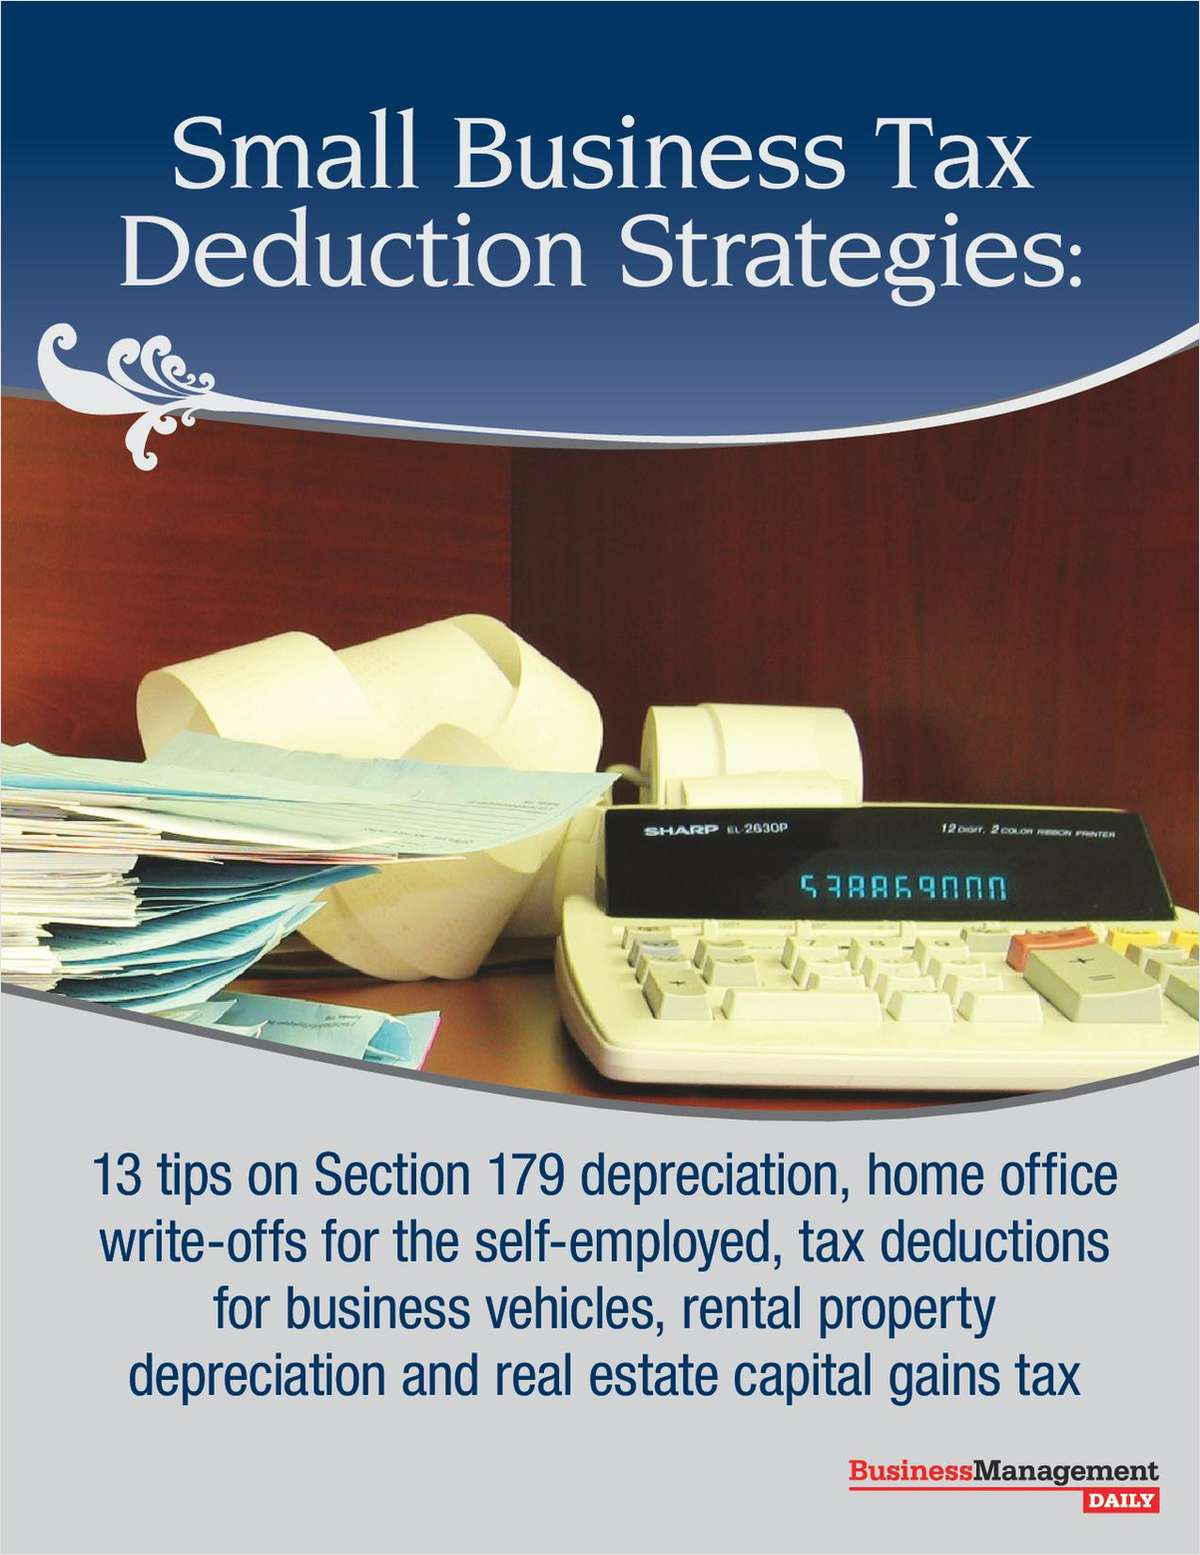 Small Business Tax Deduction Strategies That Will Save You Money